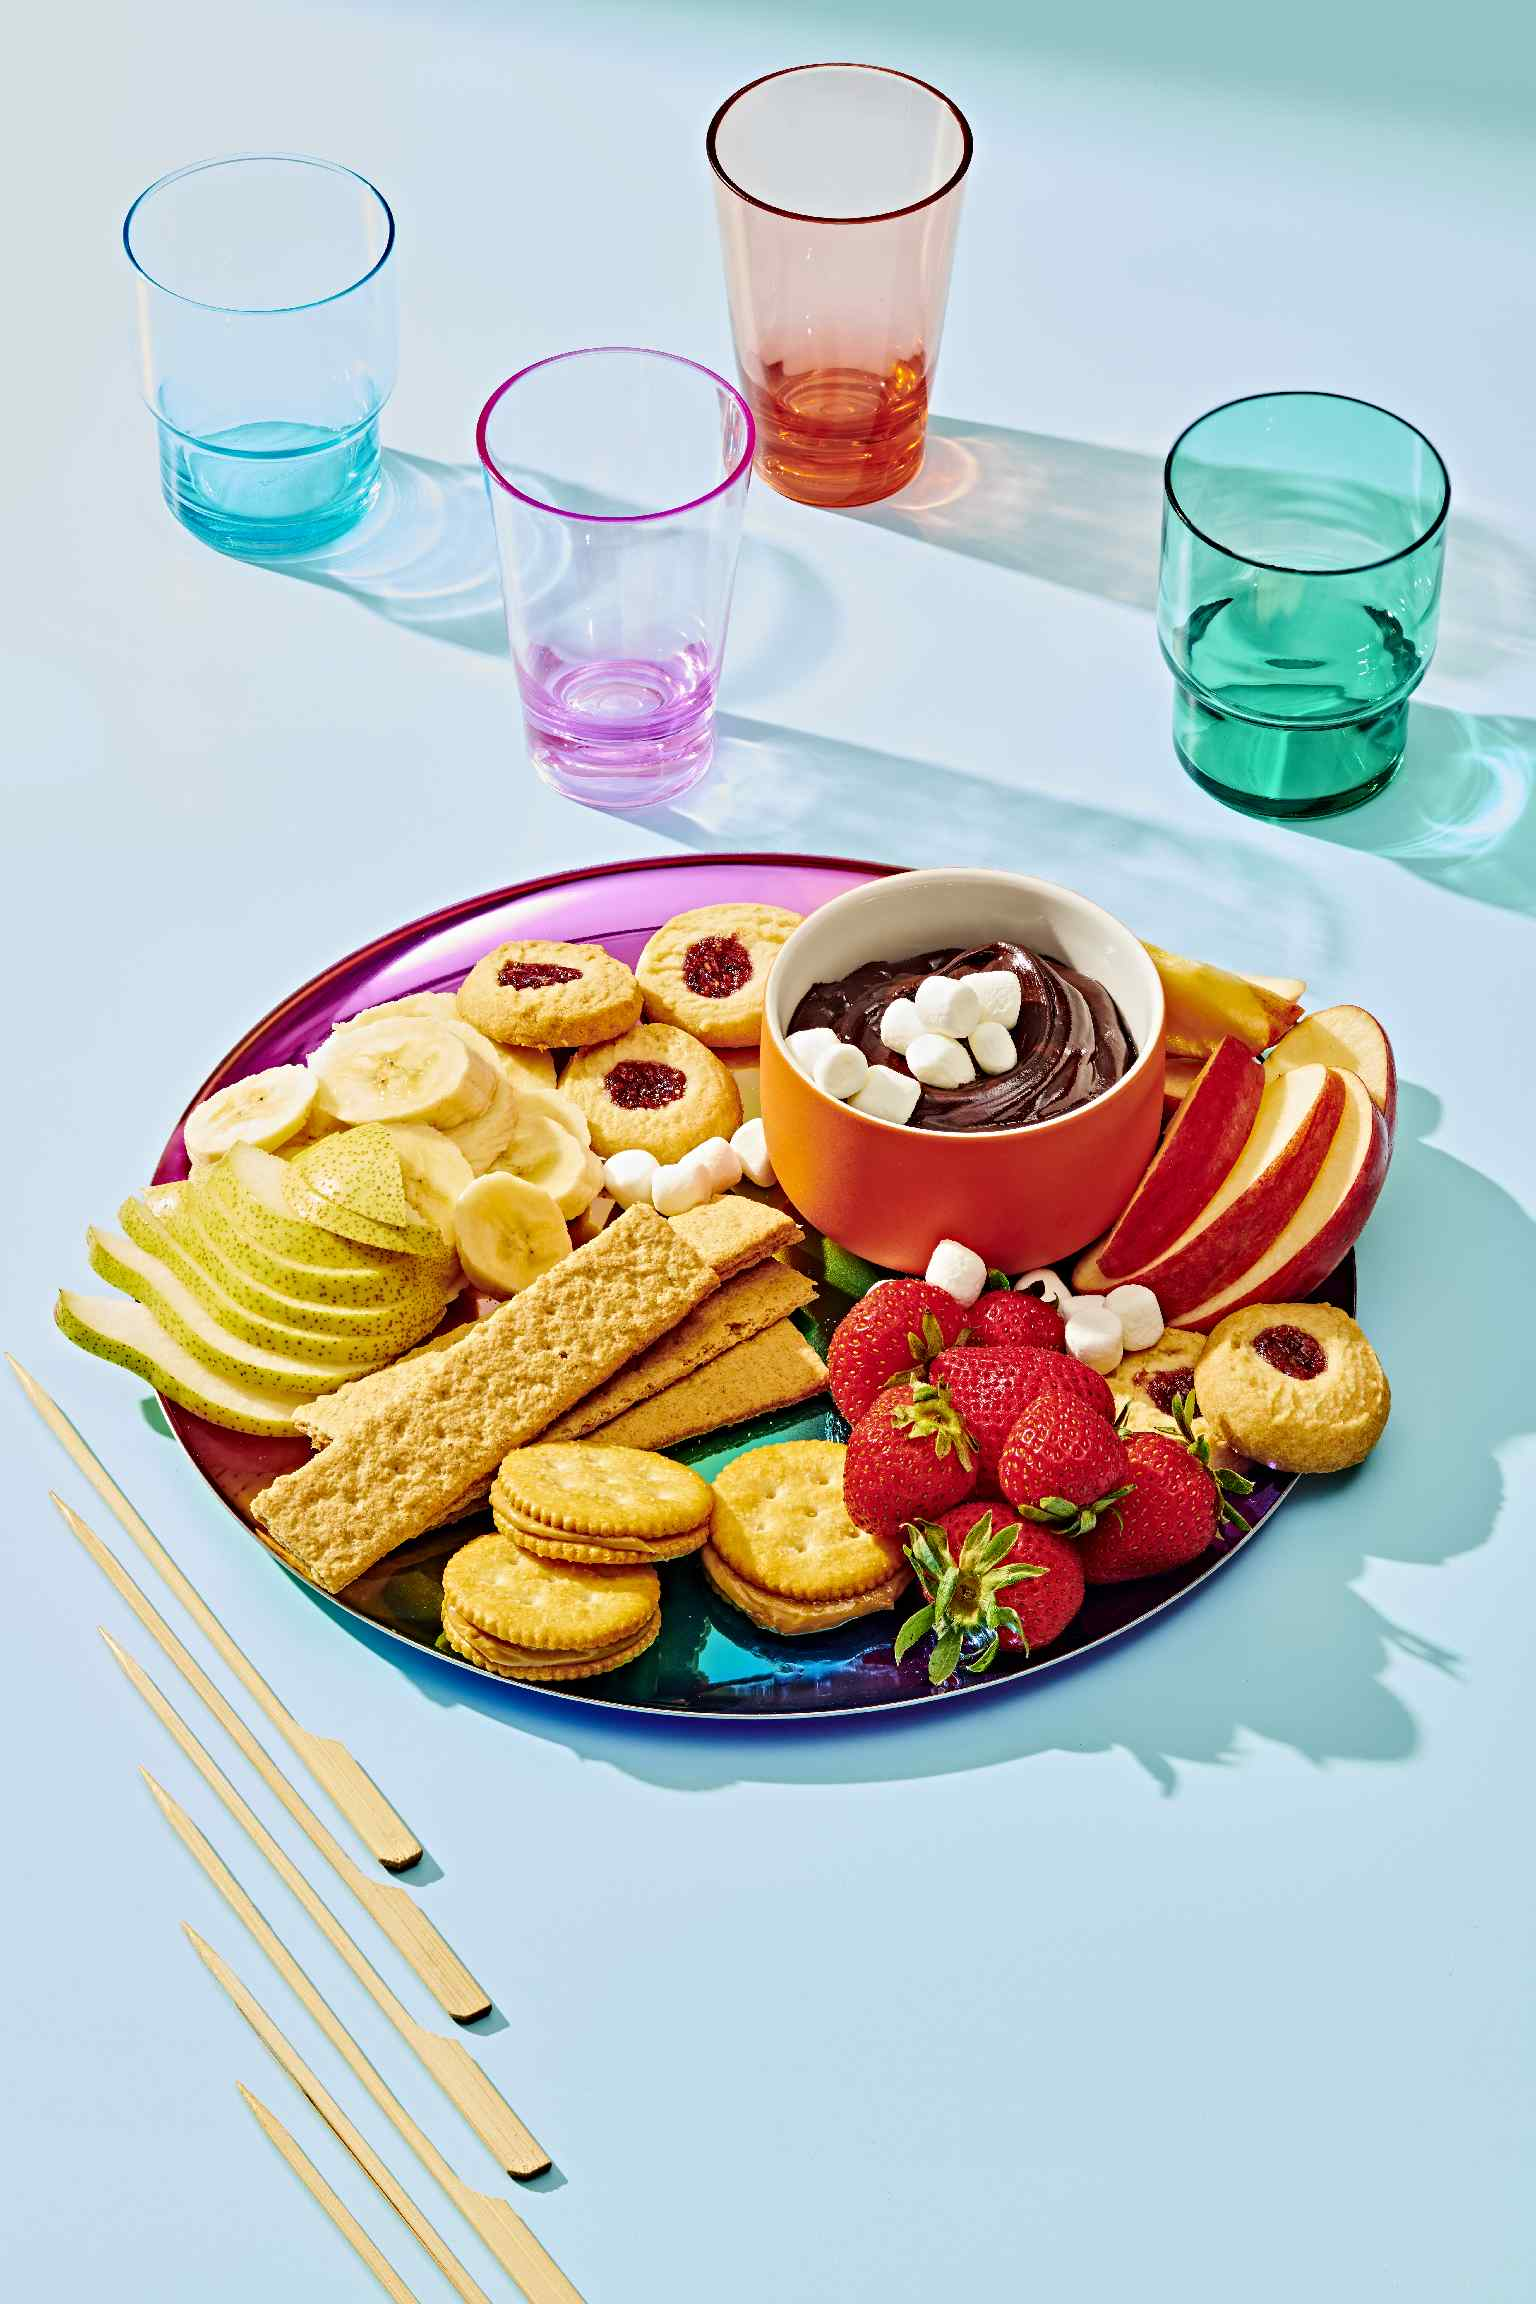 Get dipping! Kids will go crazy for this easy dessert or extra-special after-school snack.